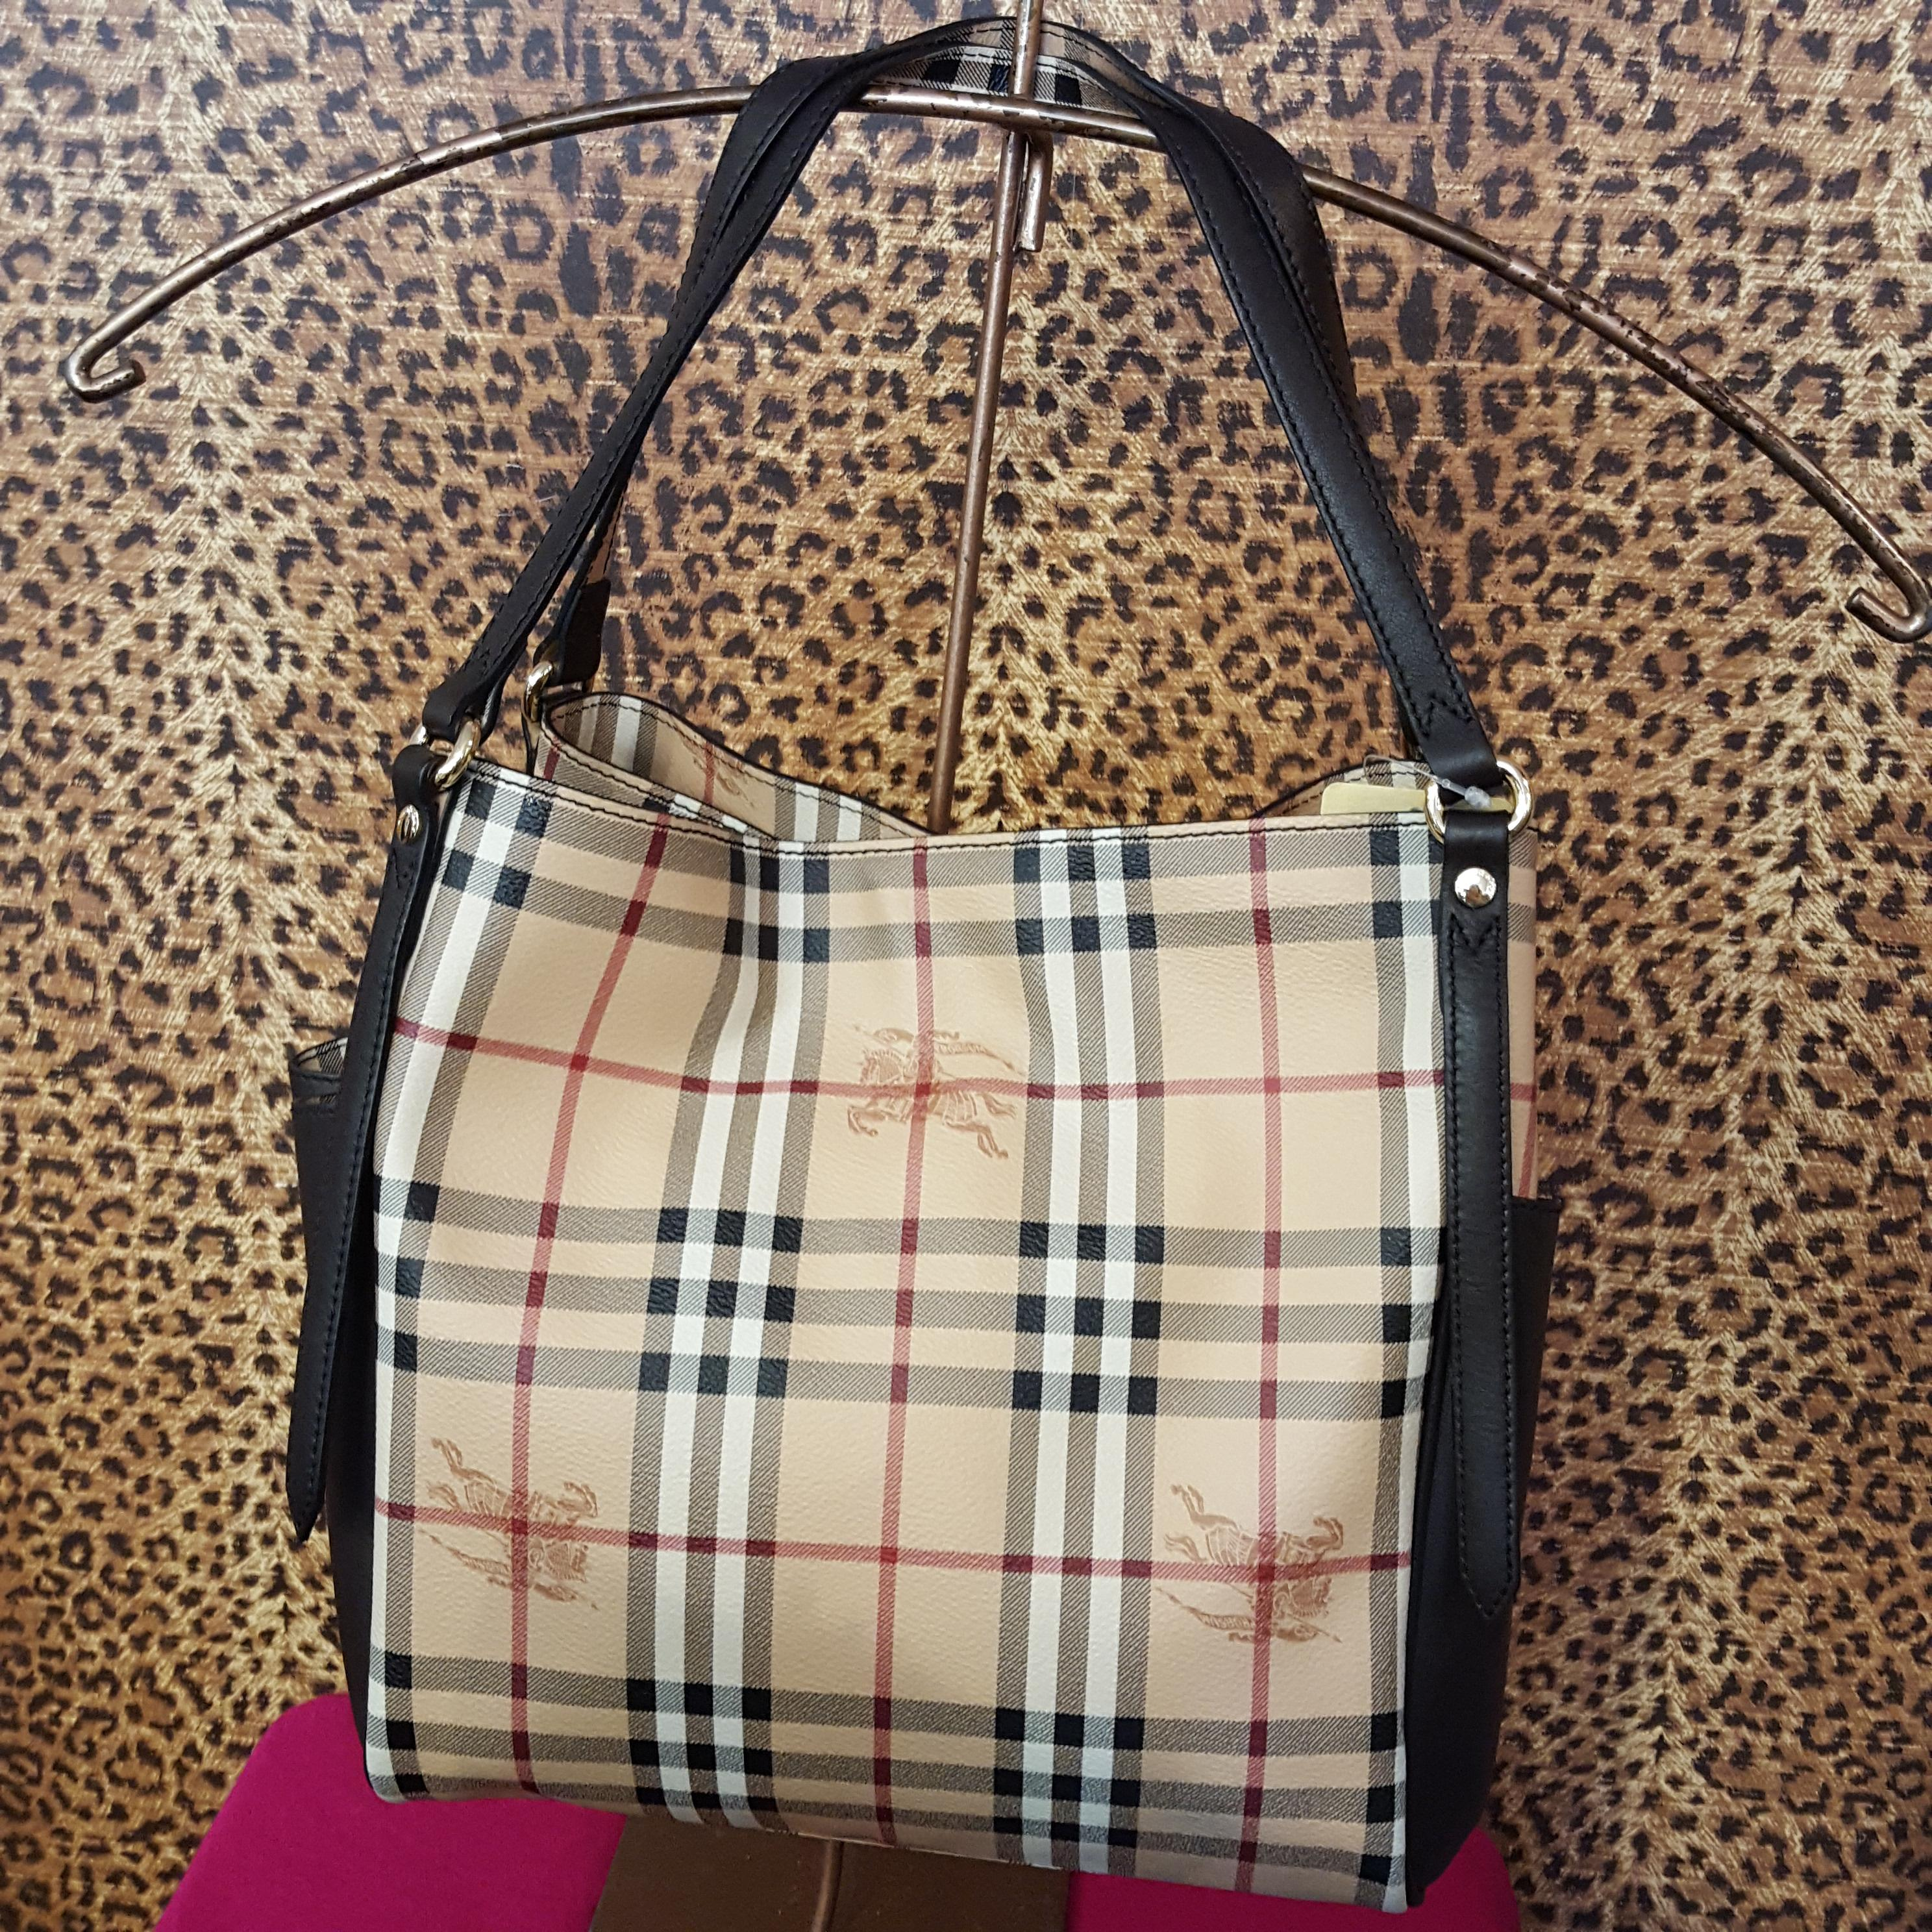 Burberry~ Black, Coated Canvas, Leather Purses, Handbags Price: $799.49